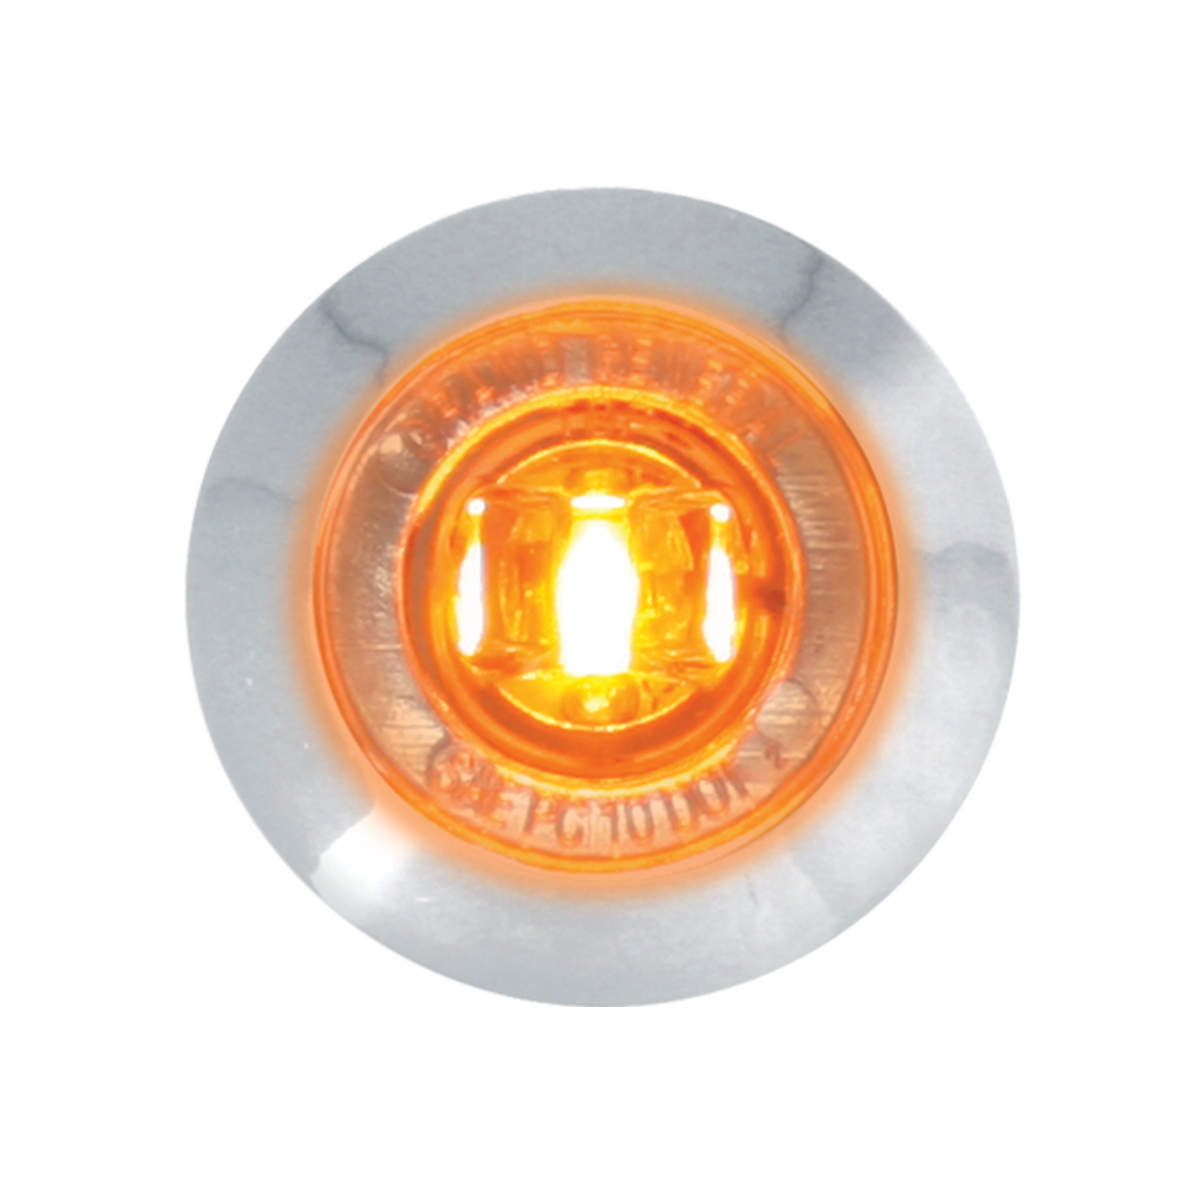 "87061 Amber/Clear 1"" Dia. Mini Push/Screw-in Wide Angle LED Marker Light w/ Chrome Bezel"